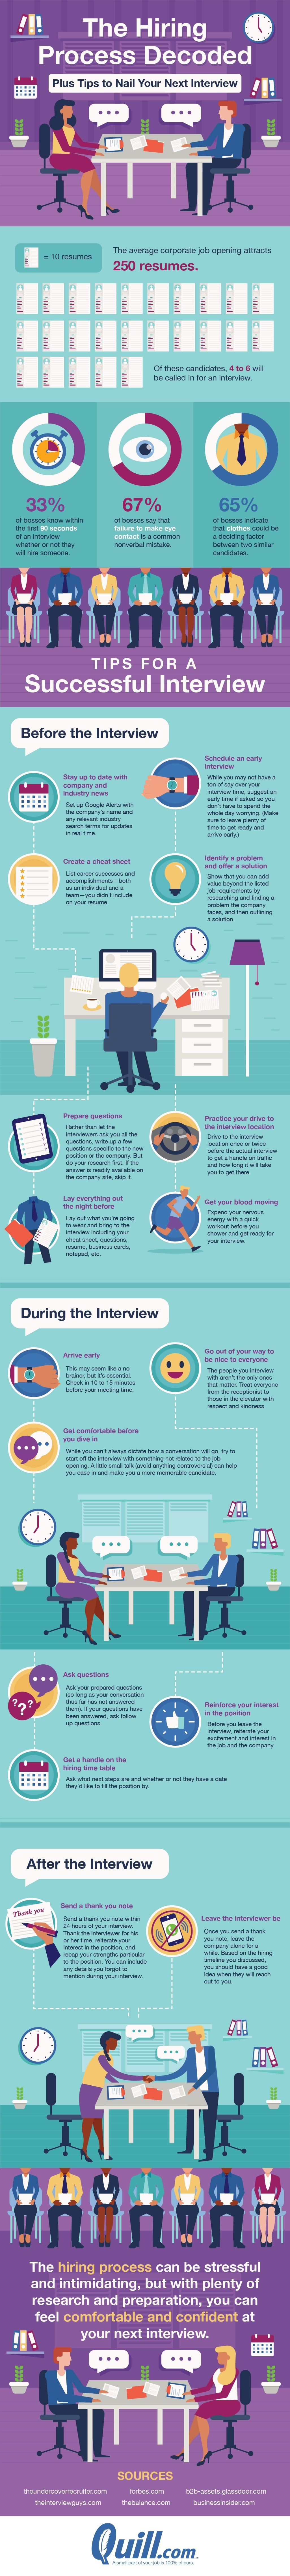 The hiring process decoded: Plus tips to nail your next interview #infographic